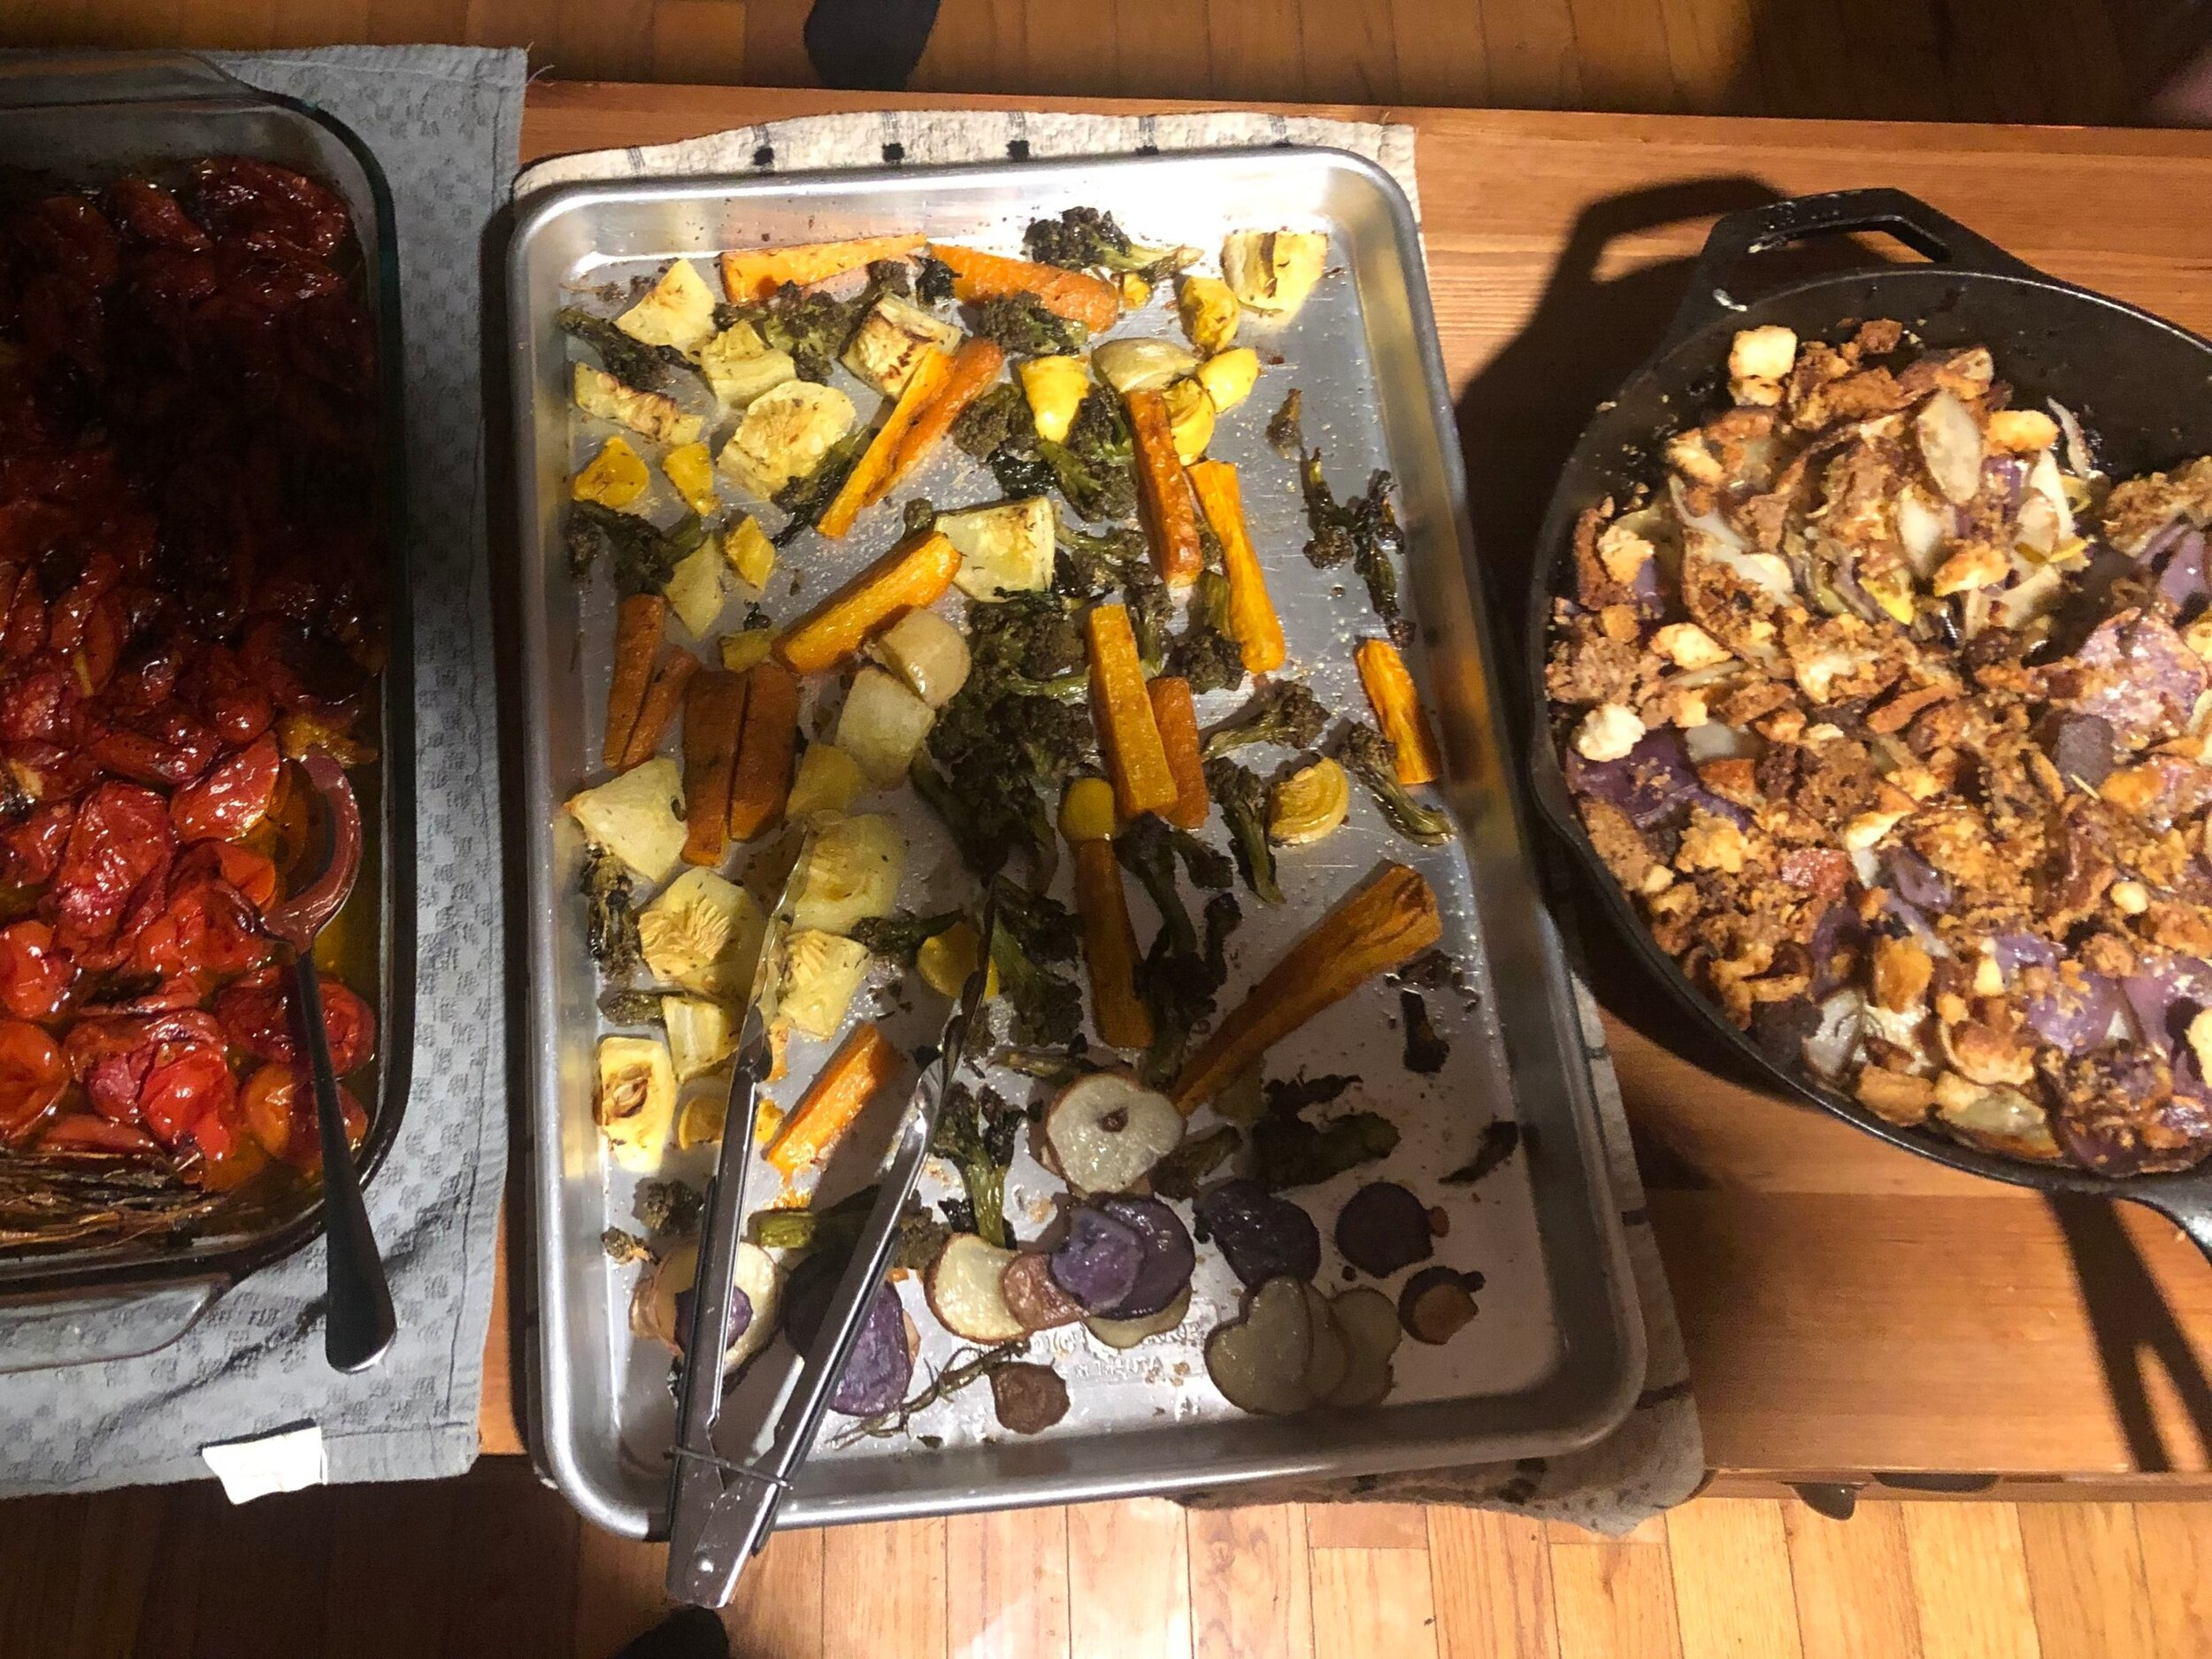 Here is a bad quality picture of dinner: olive oil slow roasted tomatoes; all of the rotting vegetables in the vegetable drawer (squash, carrots, cauliflower, potatoes) covered in salt, olive oil, garlic powder, and herbs de provence; squash and potato gratin roasted in the bacon drippings from our camping trip and covered in garlic bread crumbs.